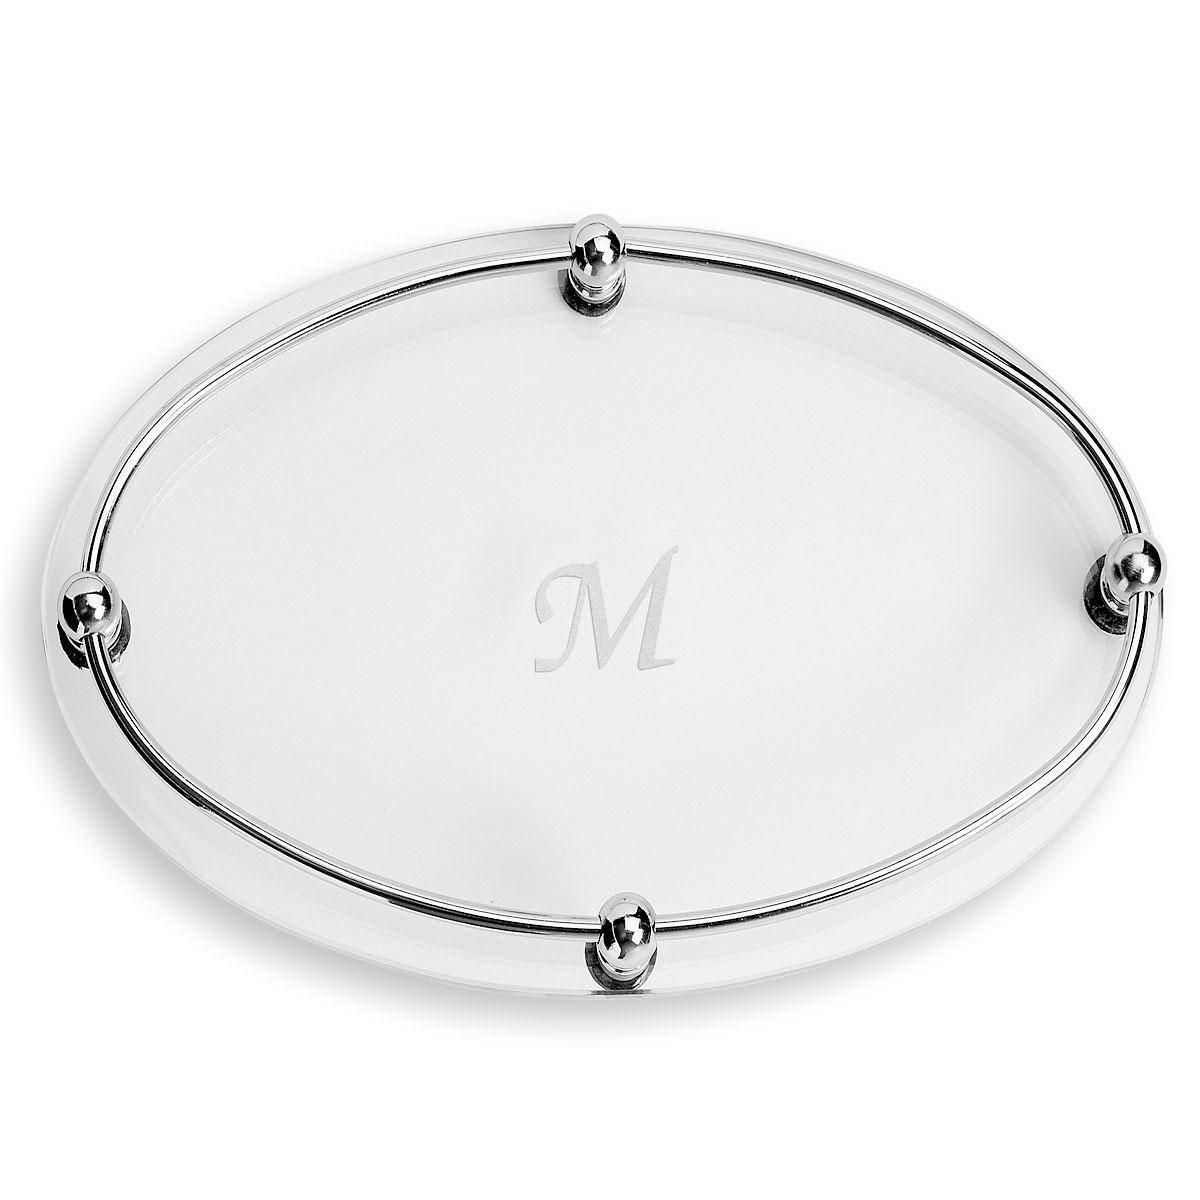 Monogrammed Glass Vanity Tray